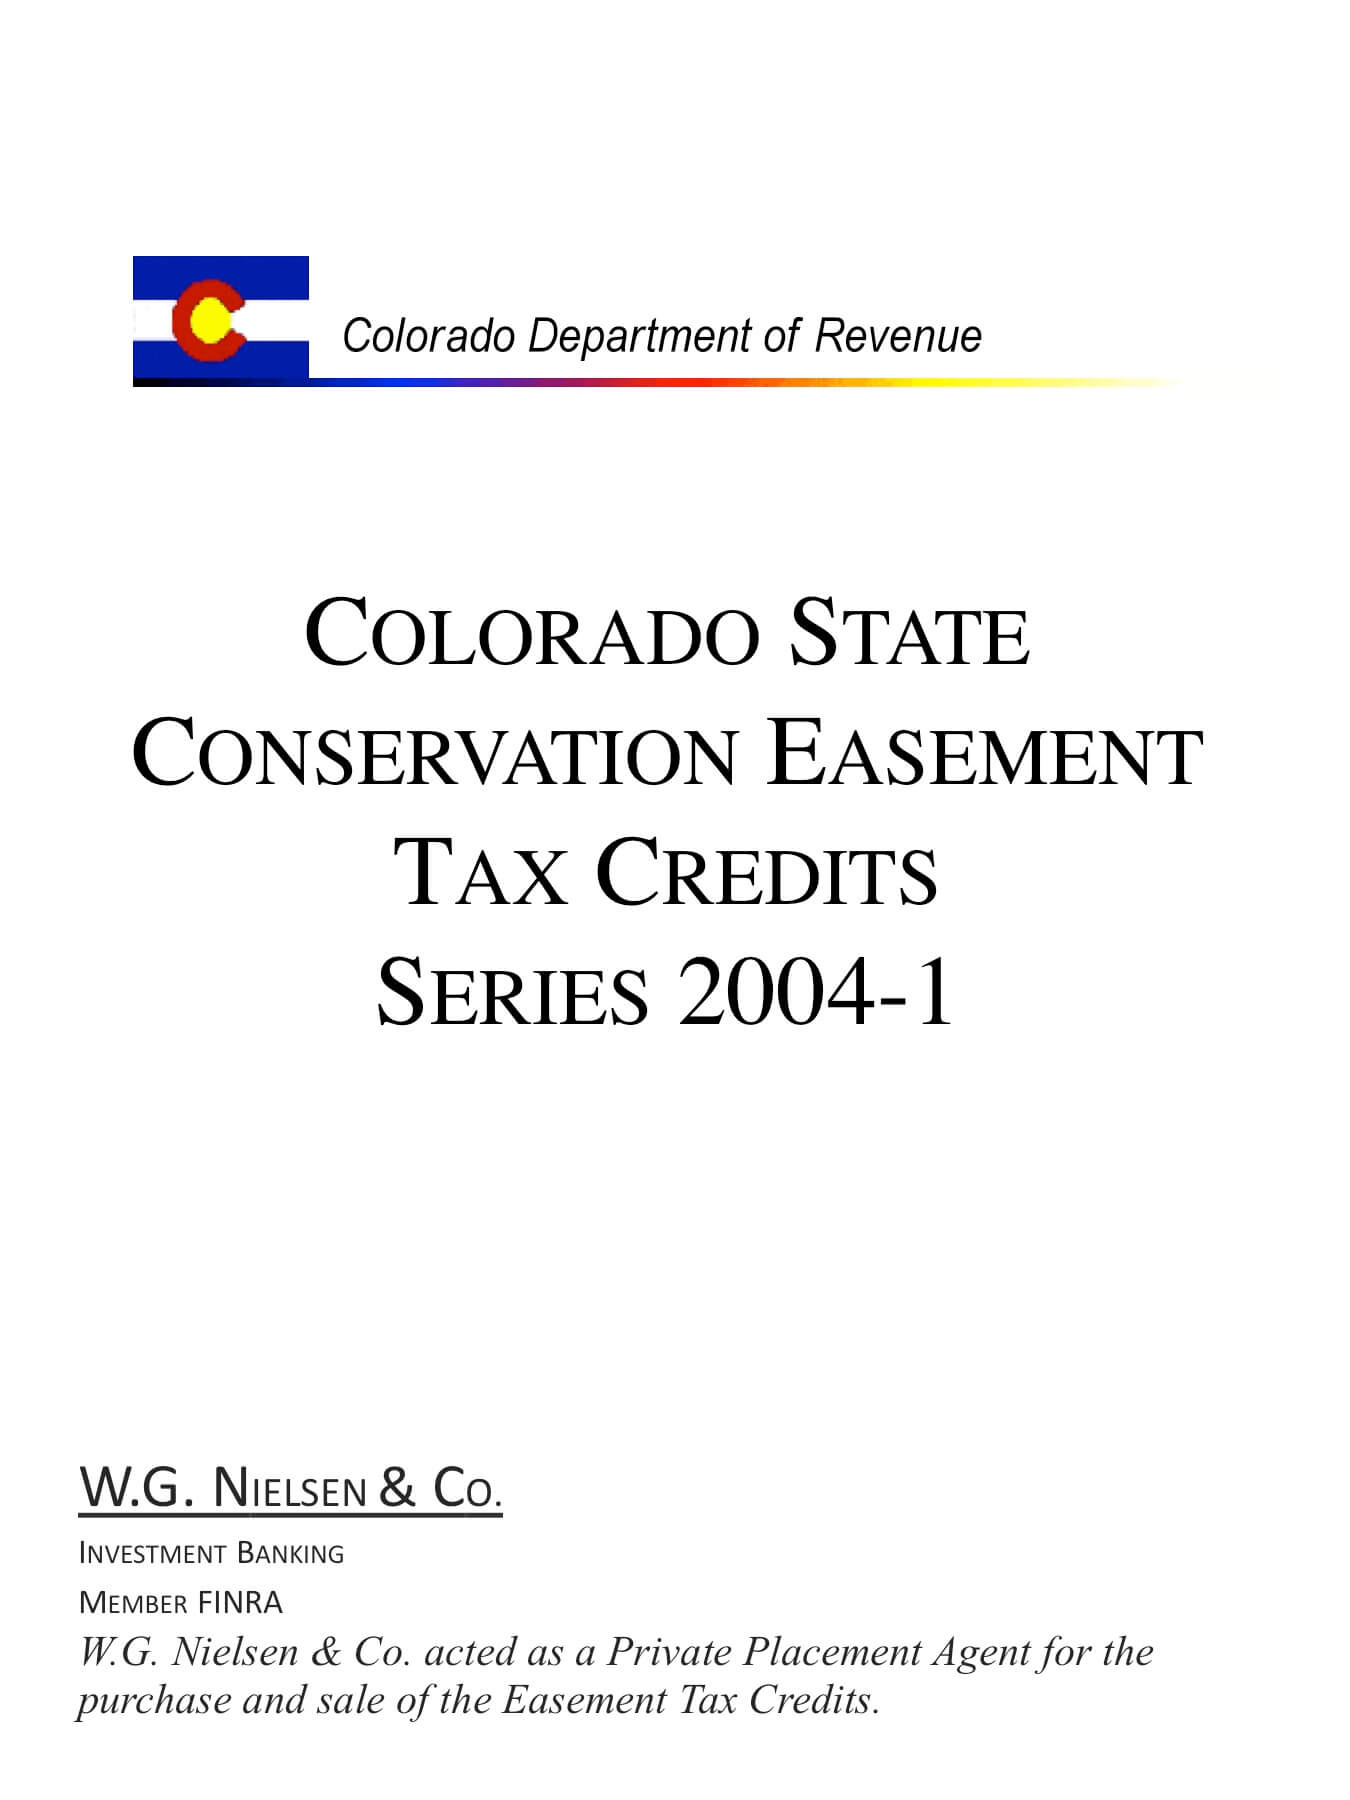 colorado department of revenue investment banking transaction